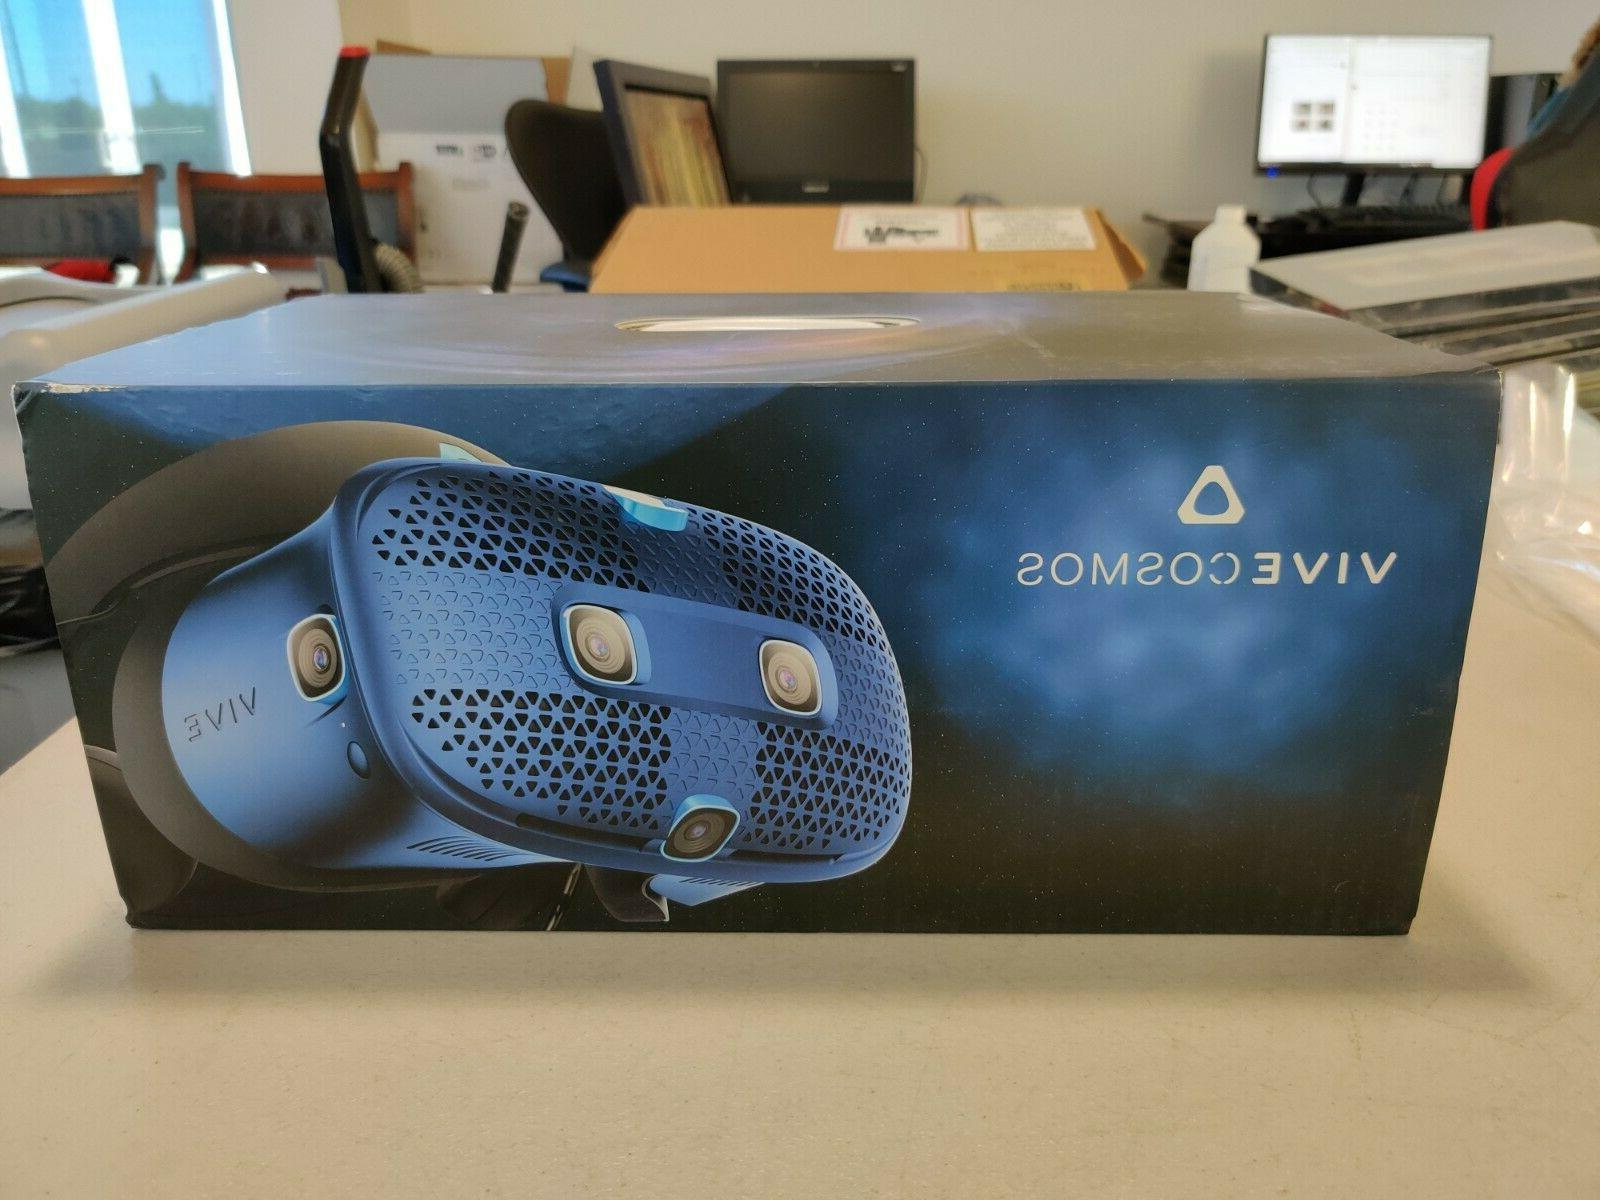 vive cosmos vr headset virtual reality system